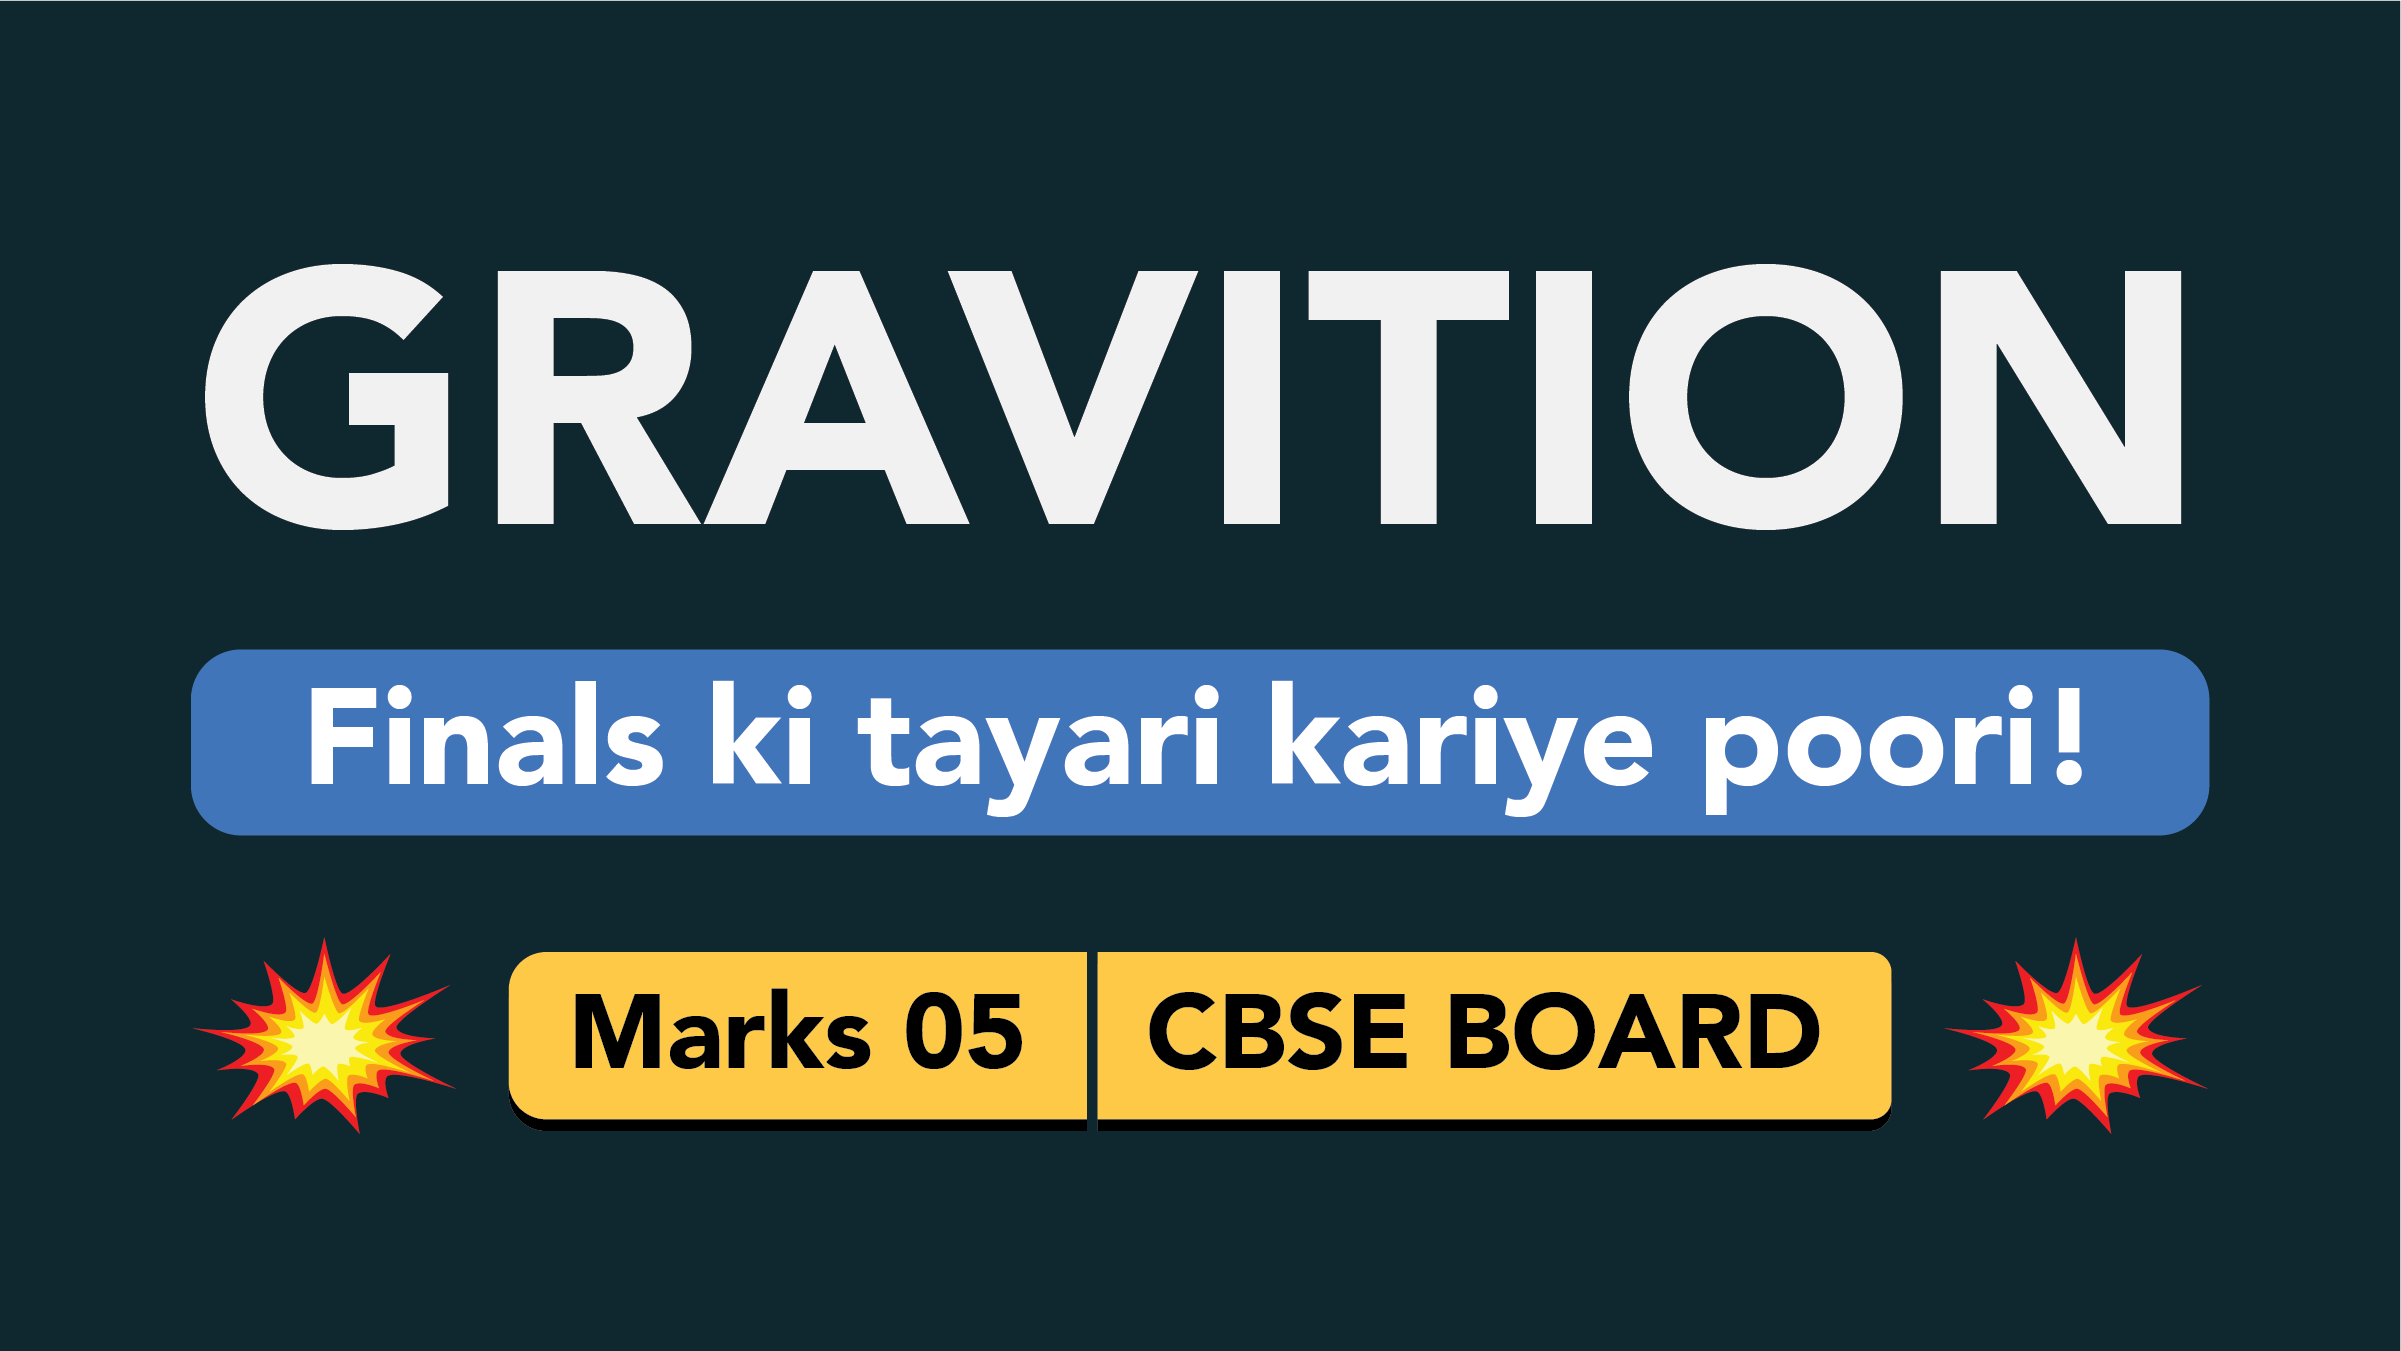 CBSE Board Class 9 GRAVITATION || Weightage and Important Topics